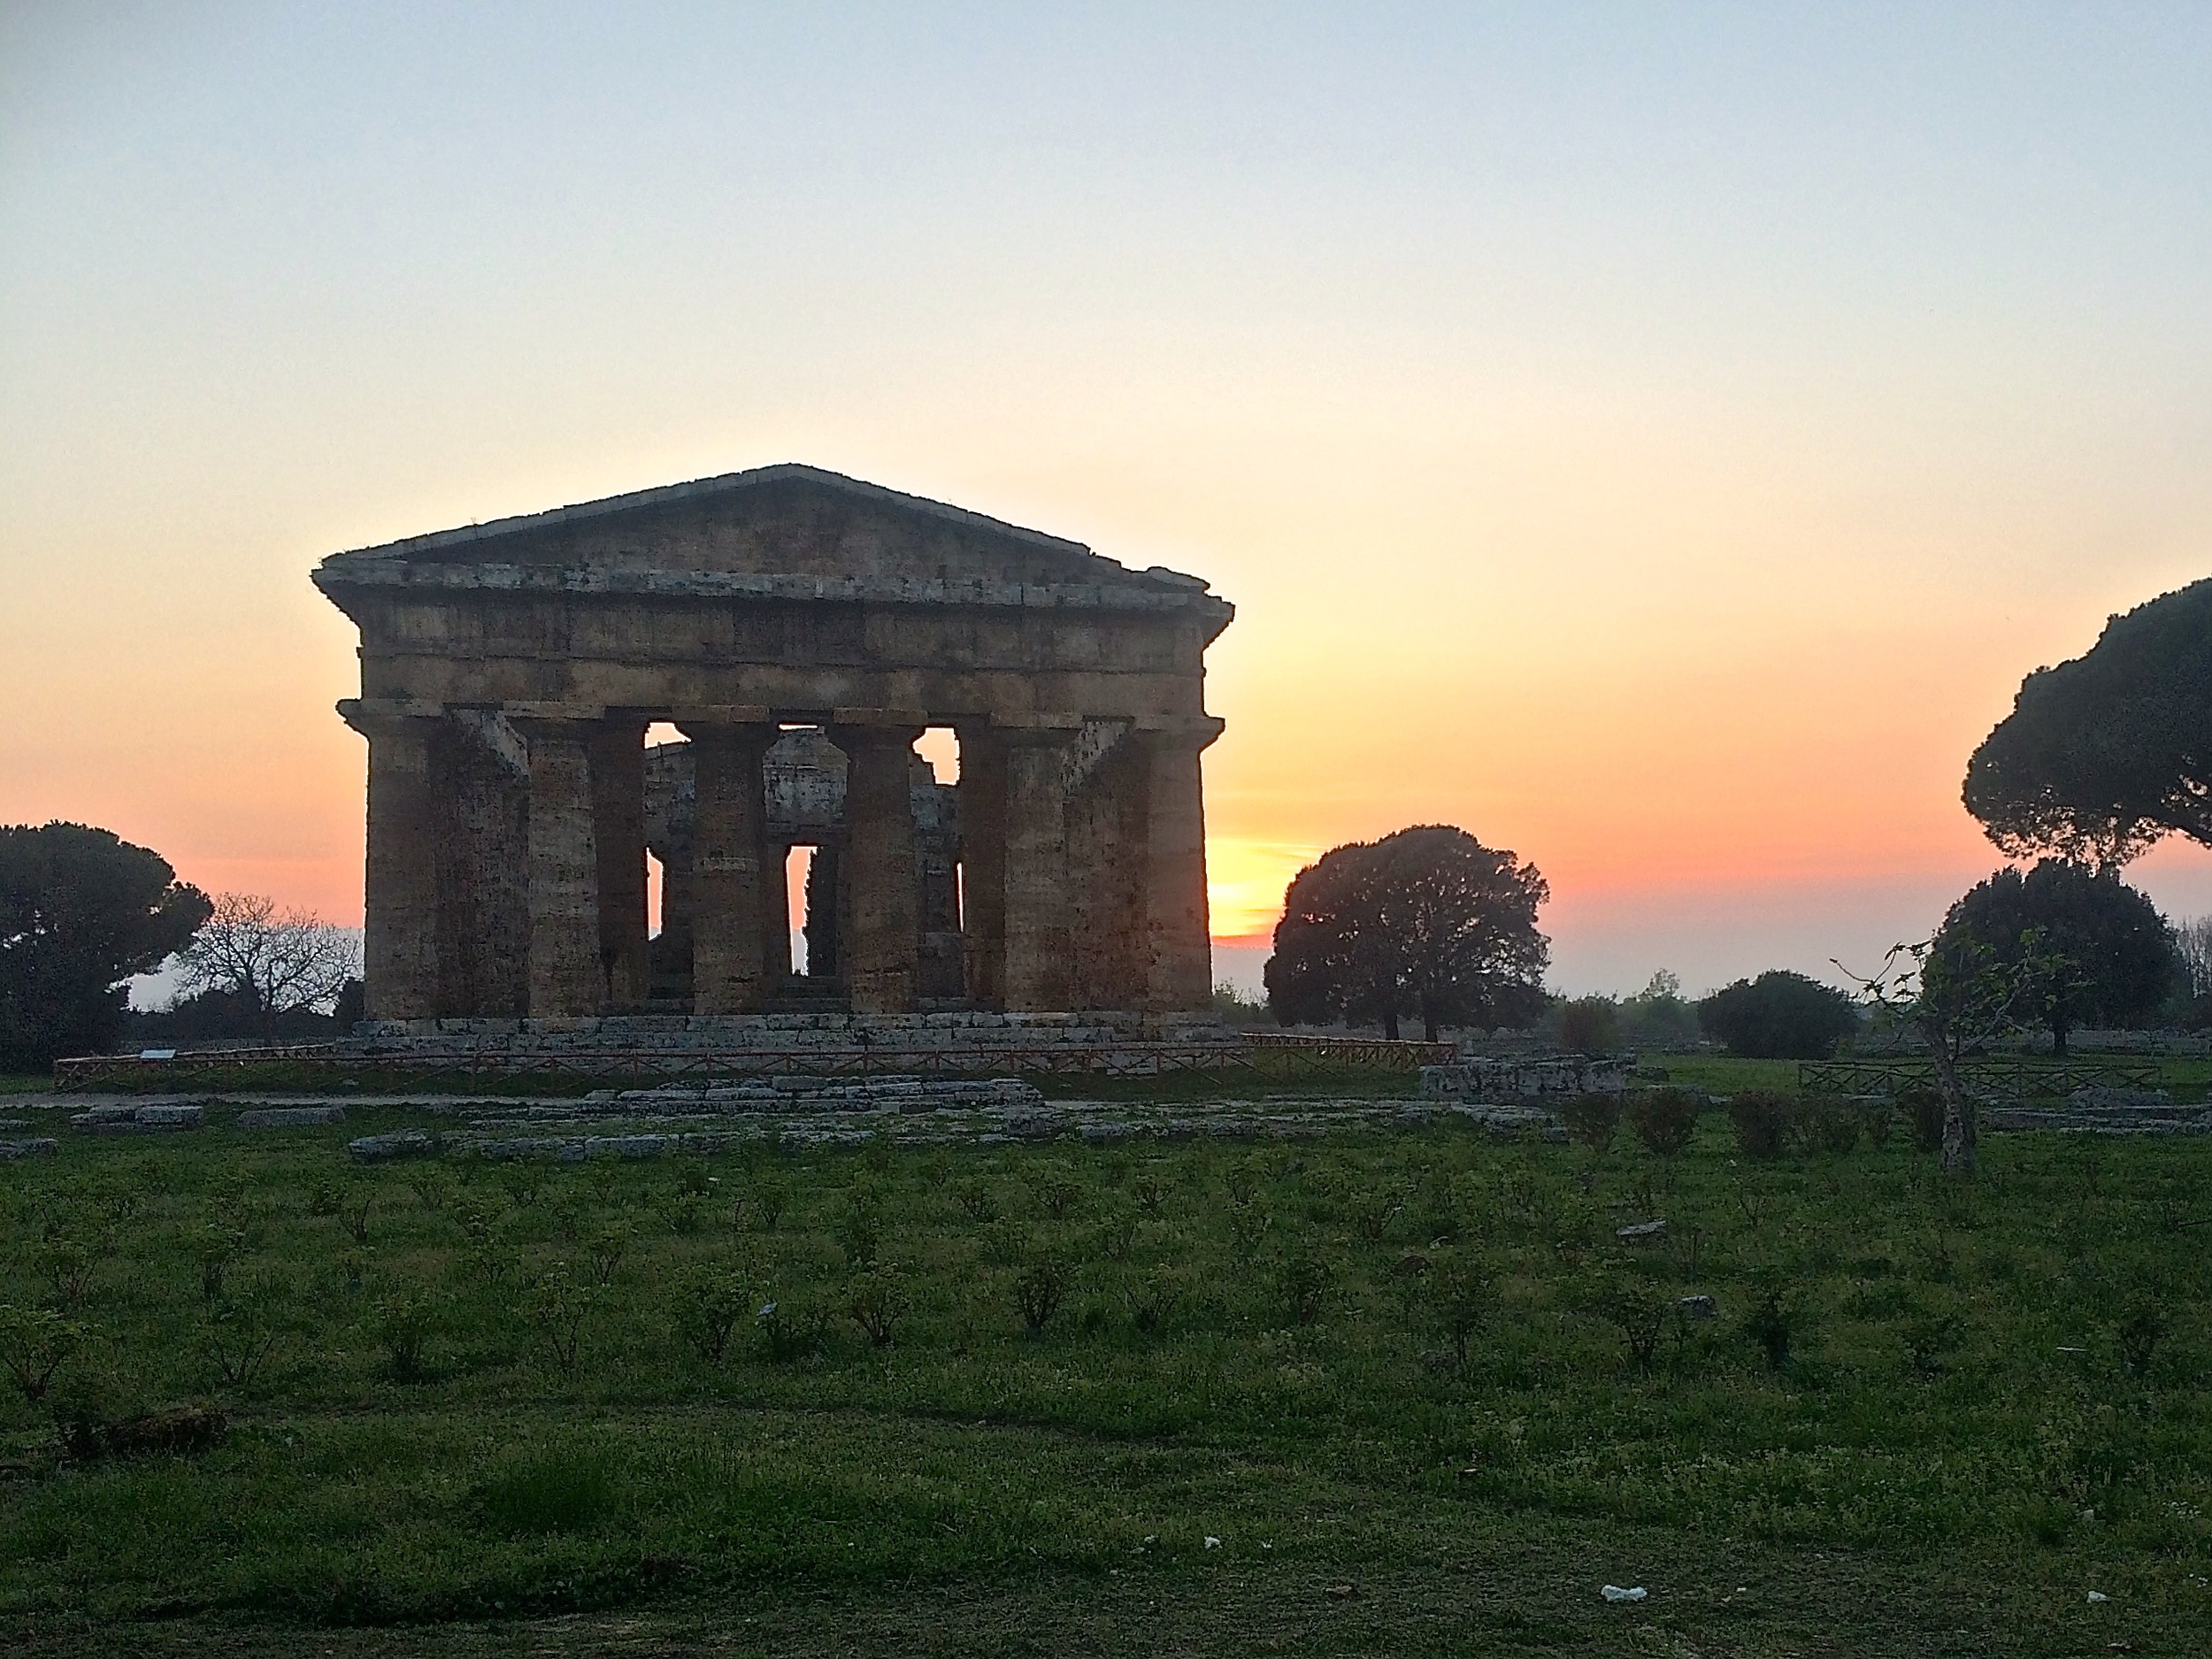 The temple of Neptune in Paestum.